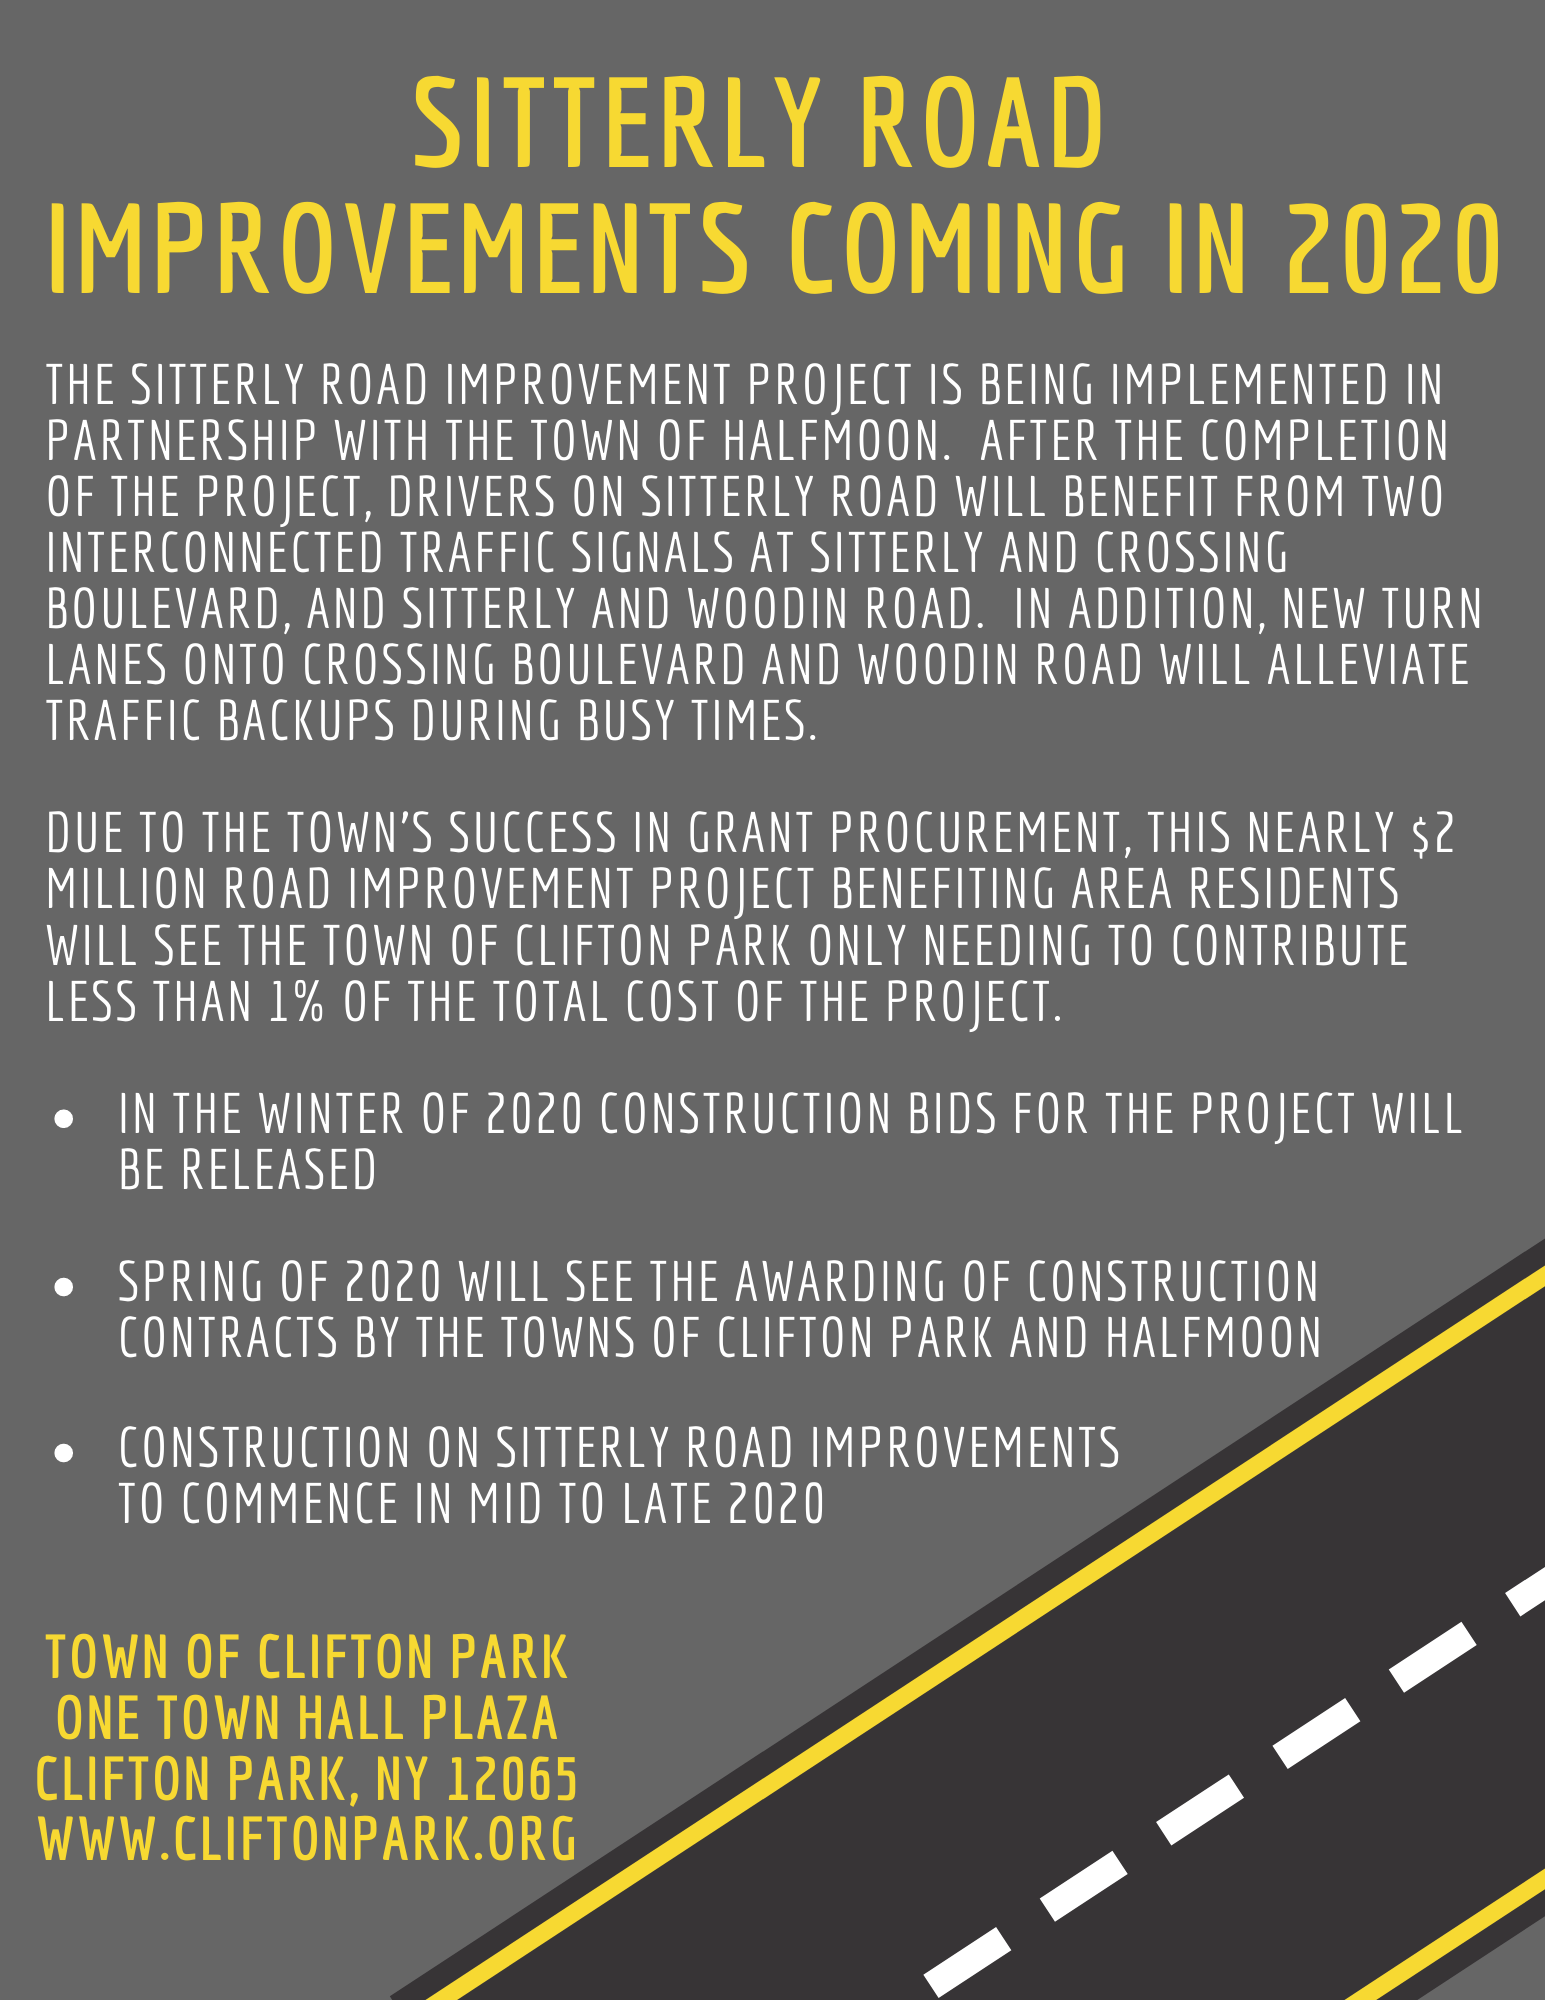 Sitterly Road Improvement Project